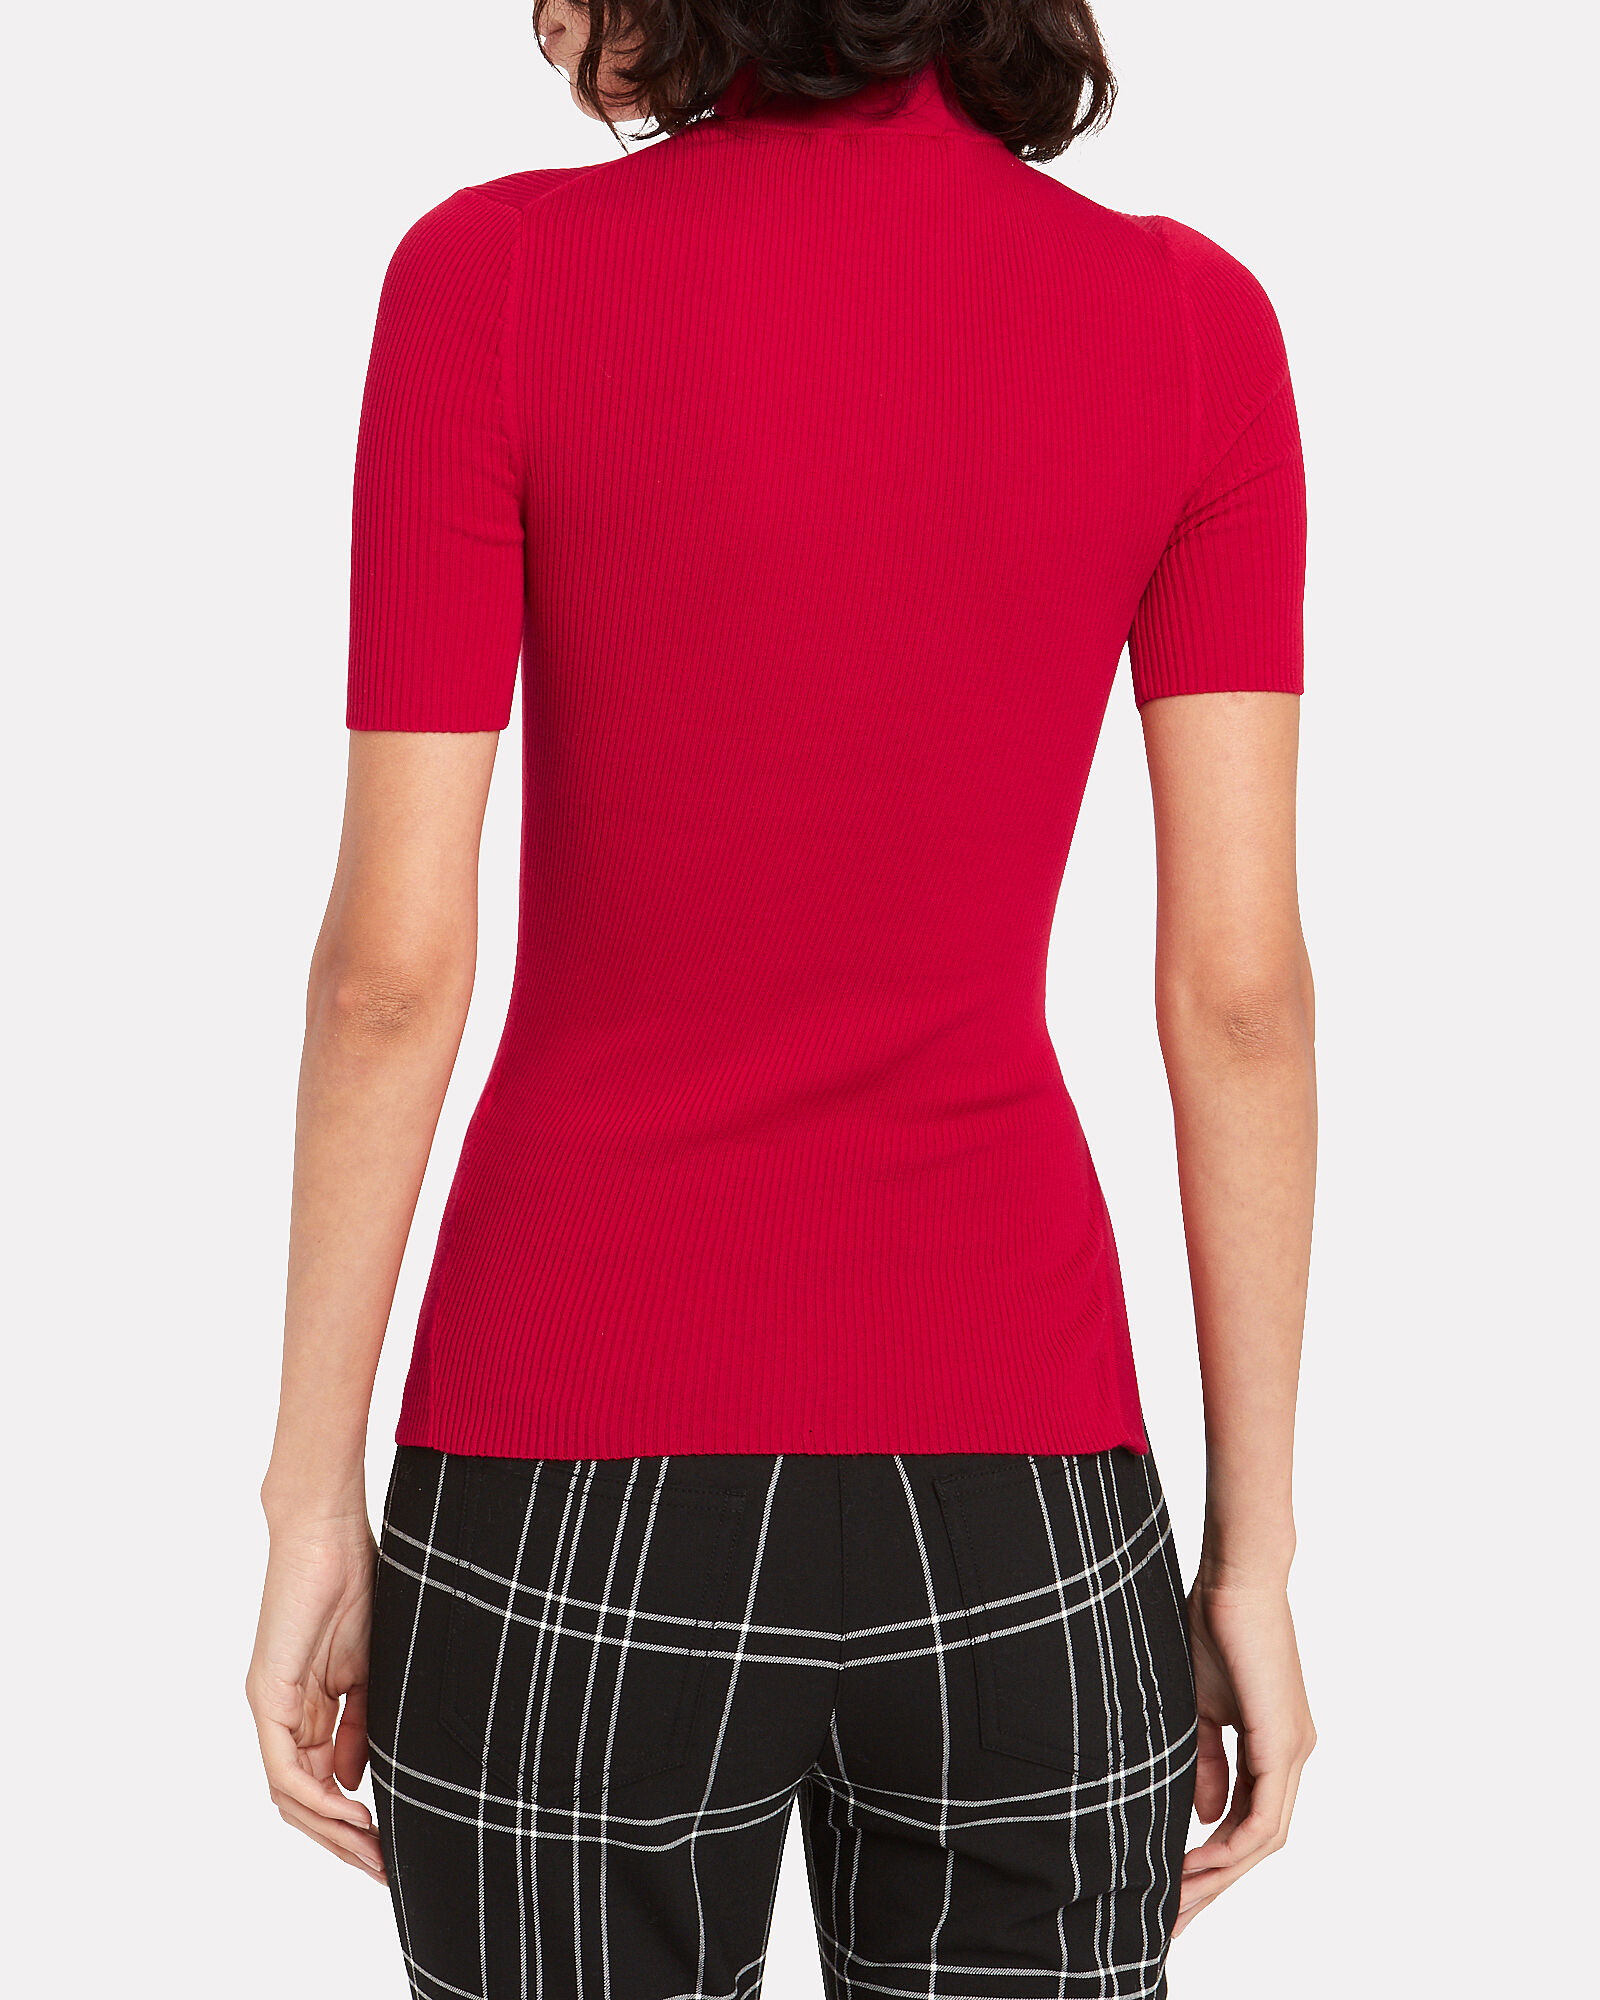 Ribbed Cotton Mock Neck Top, RED, hi-res